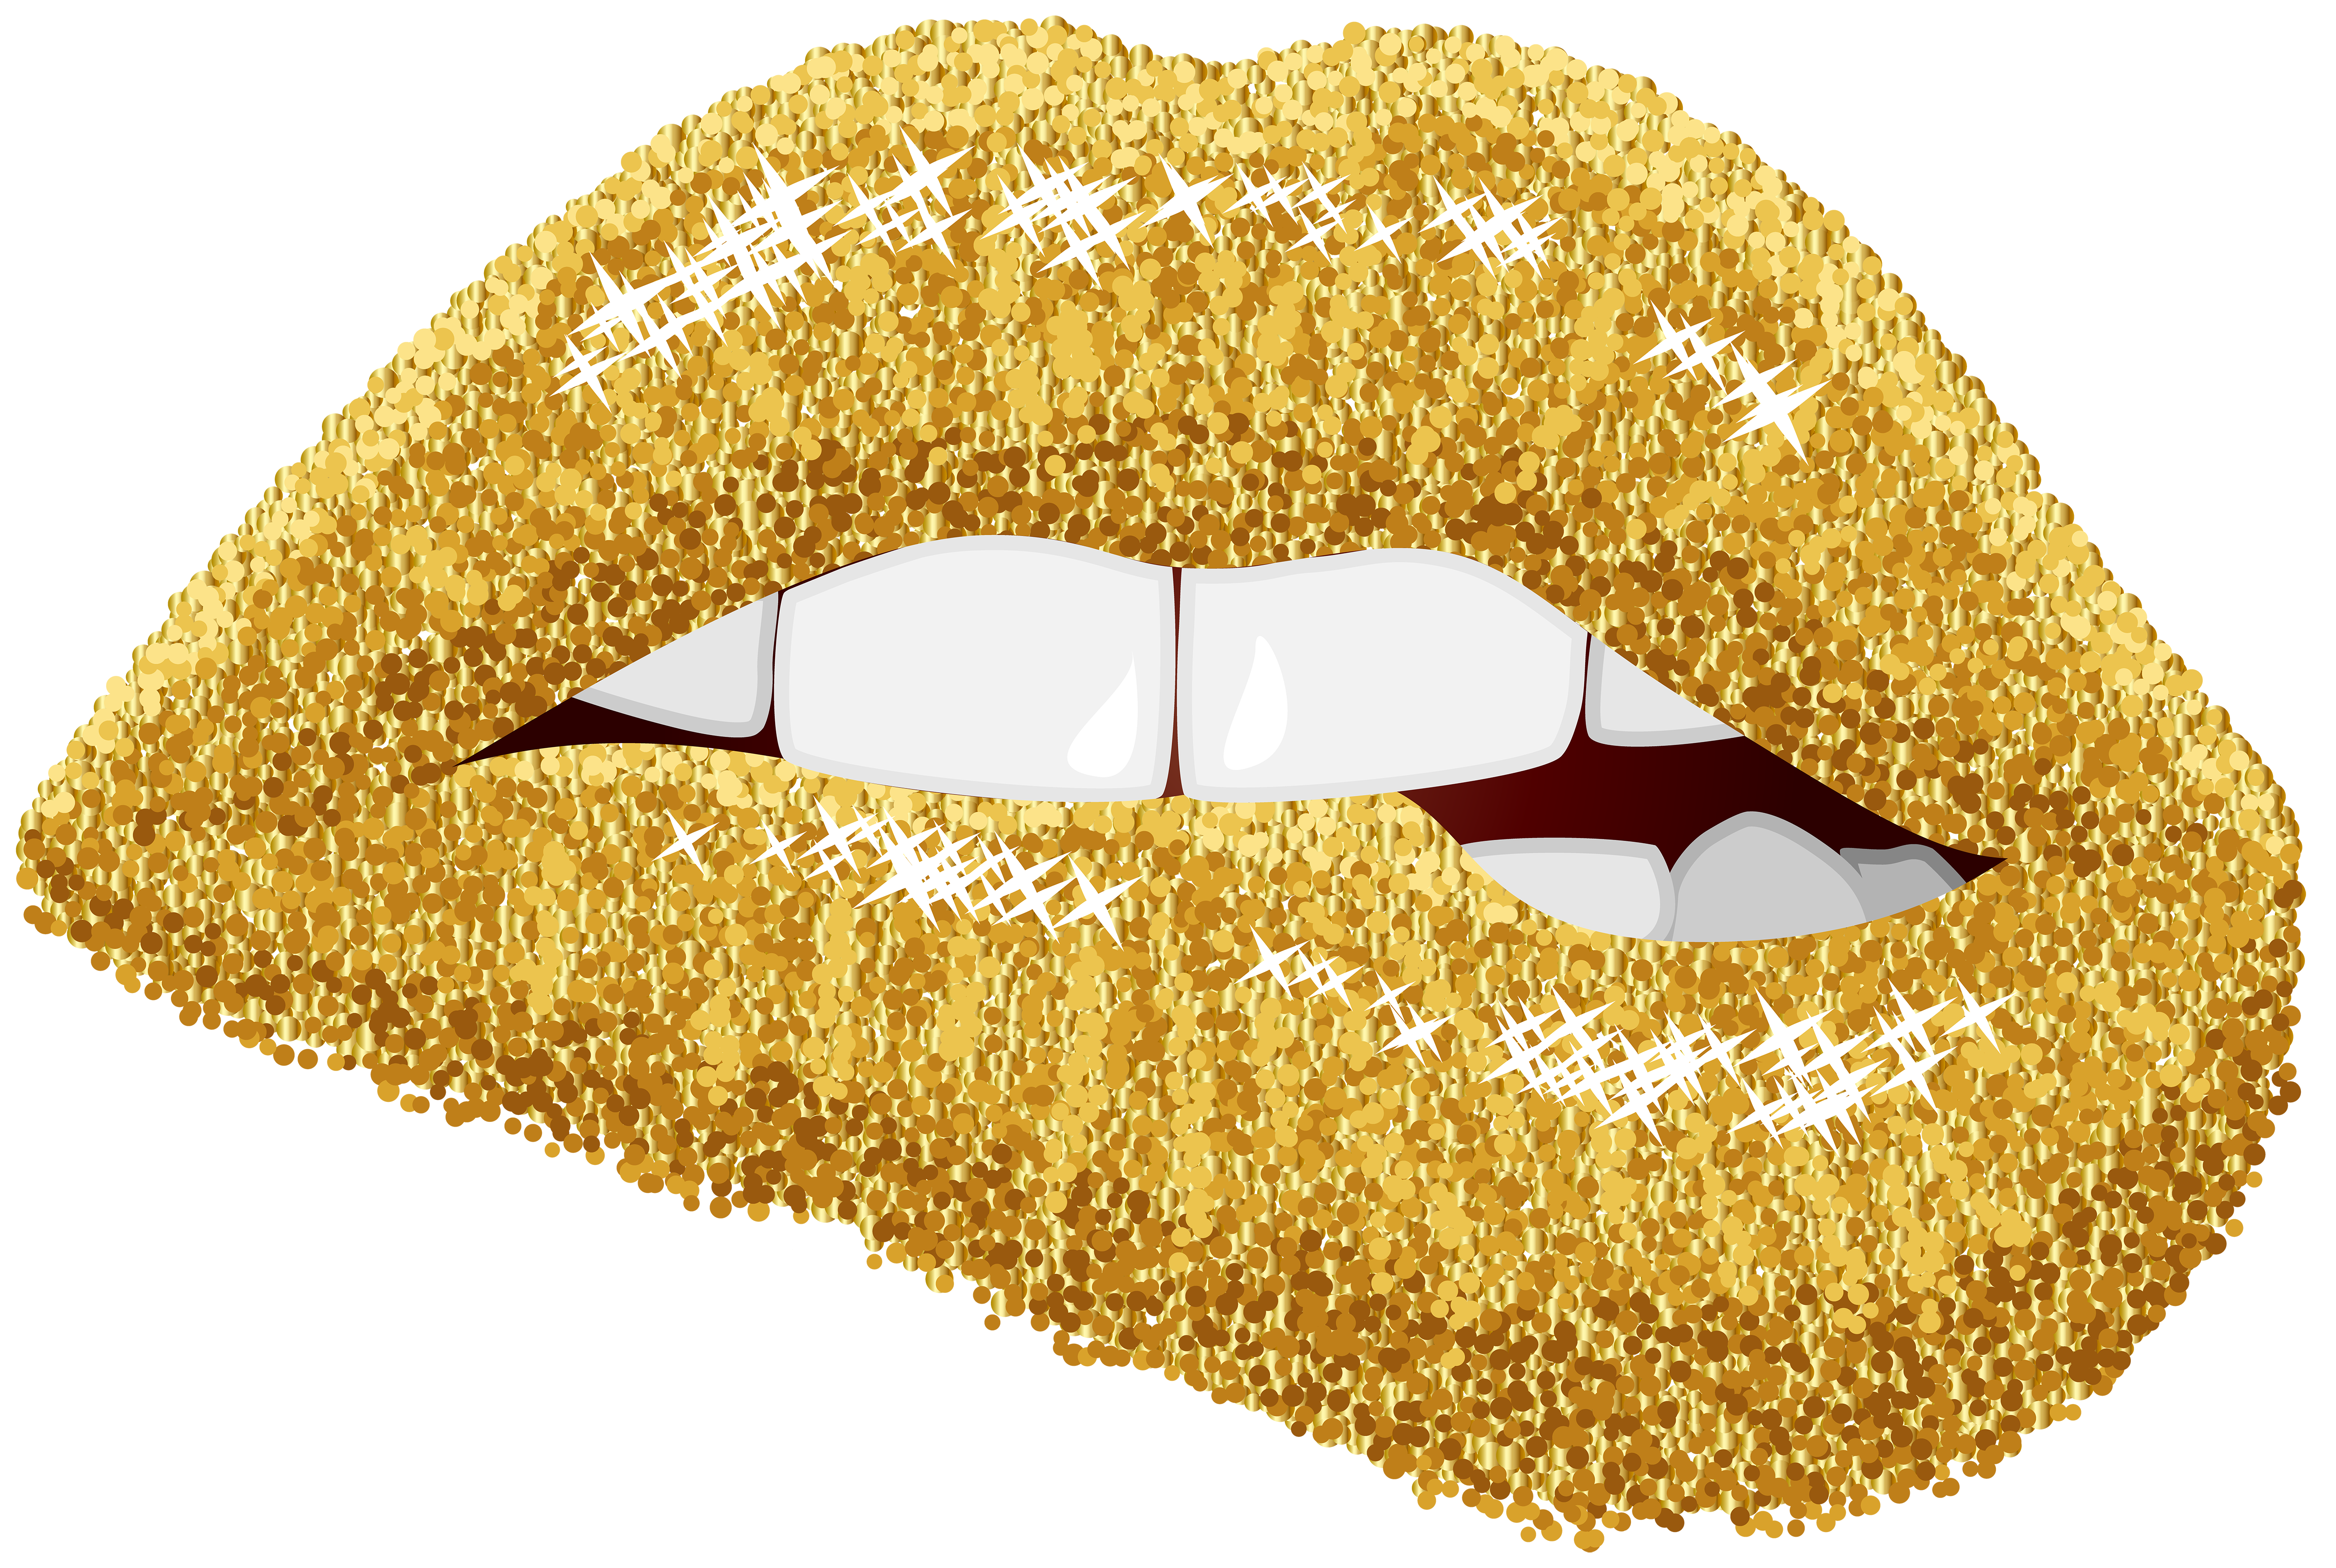 Glitter apple clipart svg black and white library Lip Gold Clip art - lips 5000*3357 transprent Png Free Download ... svg black and white library